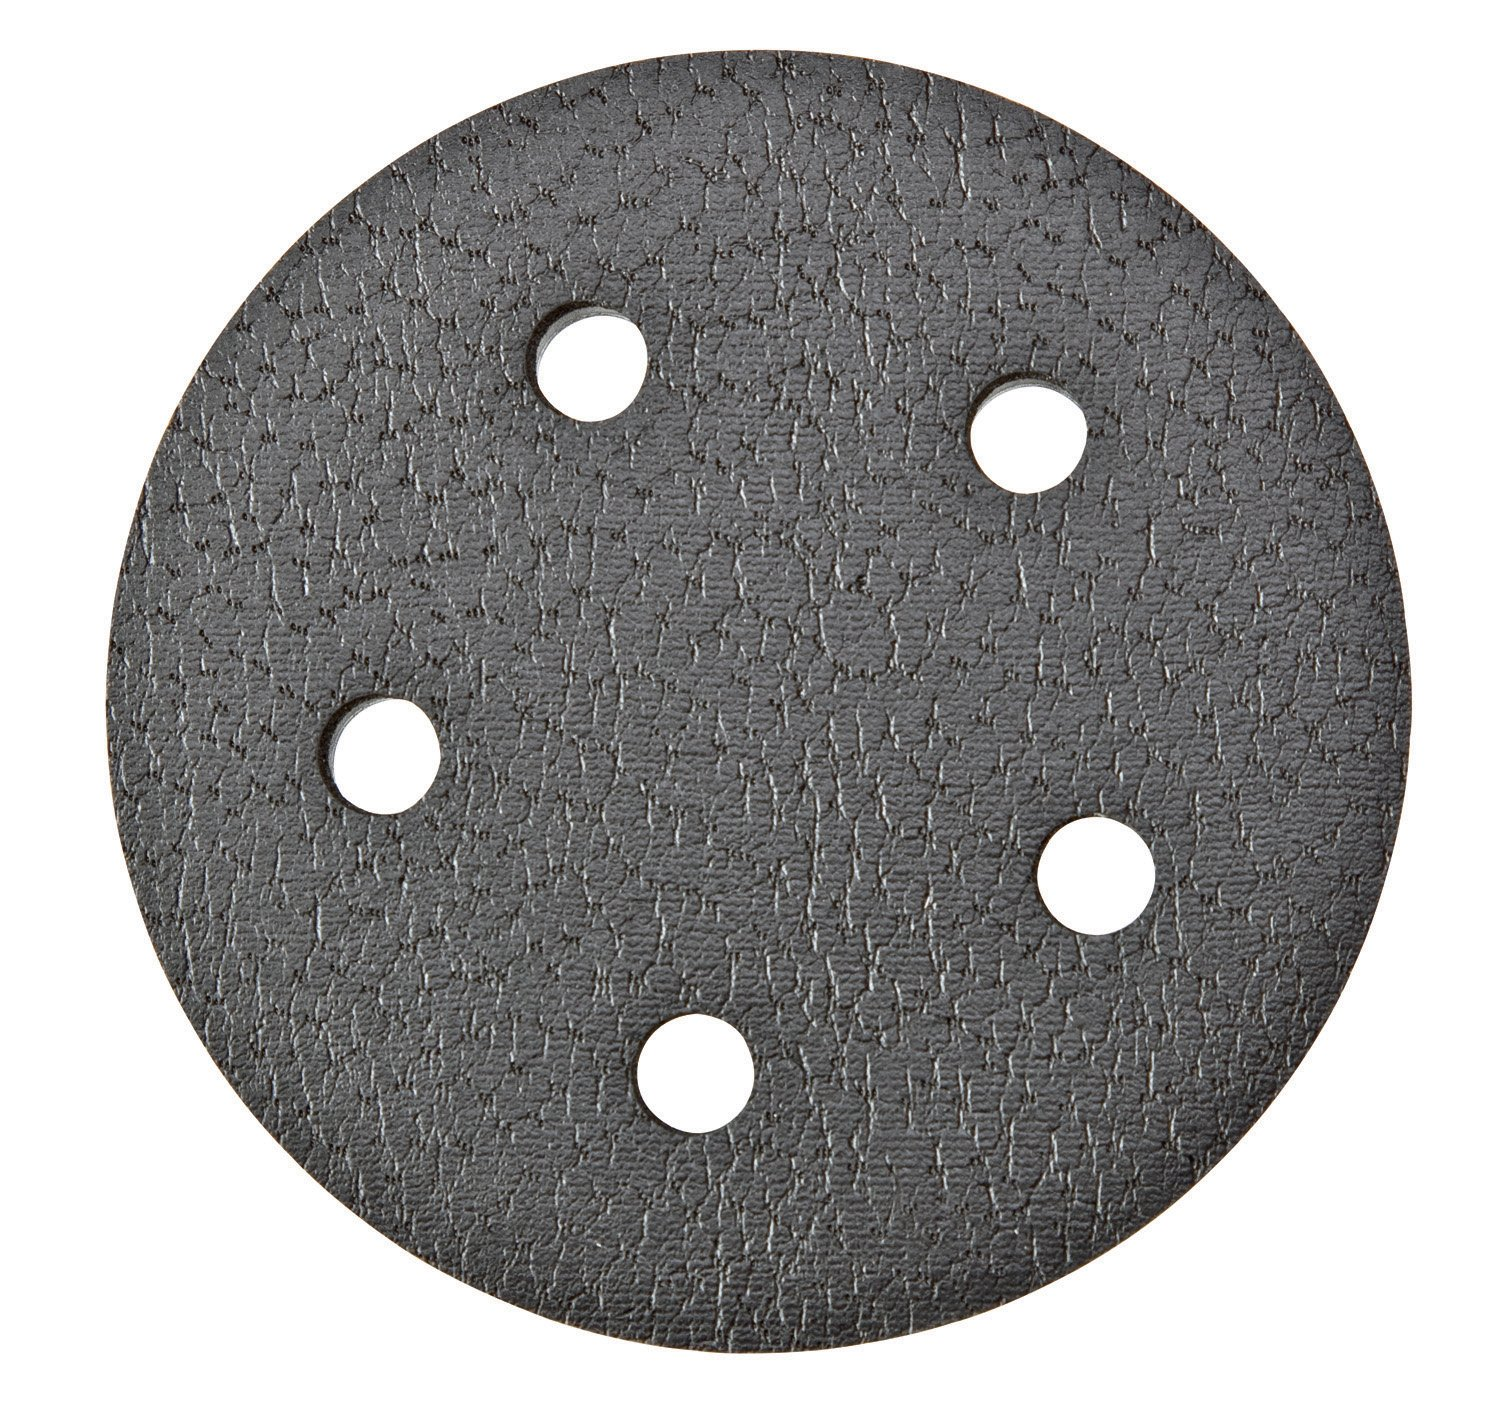 PORTER-CABLE 14700 5-Inch 5-Hole Adhesive Back Pad